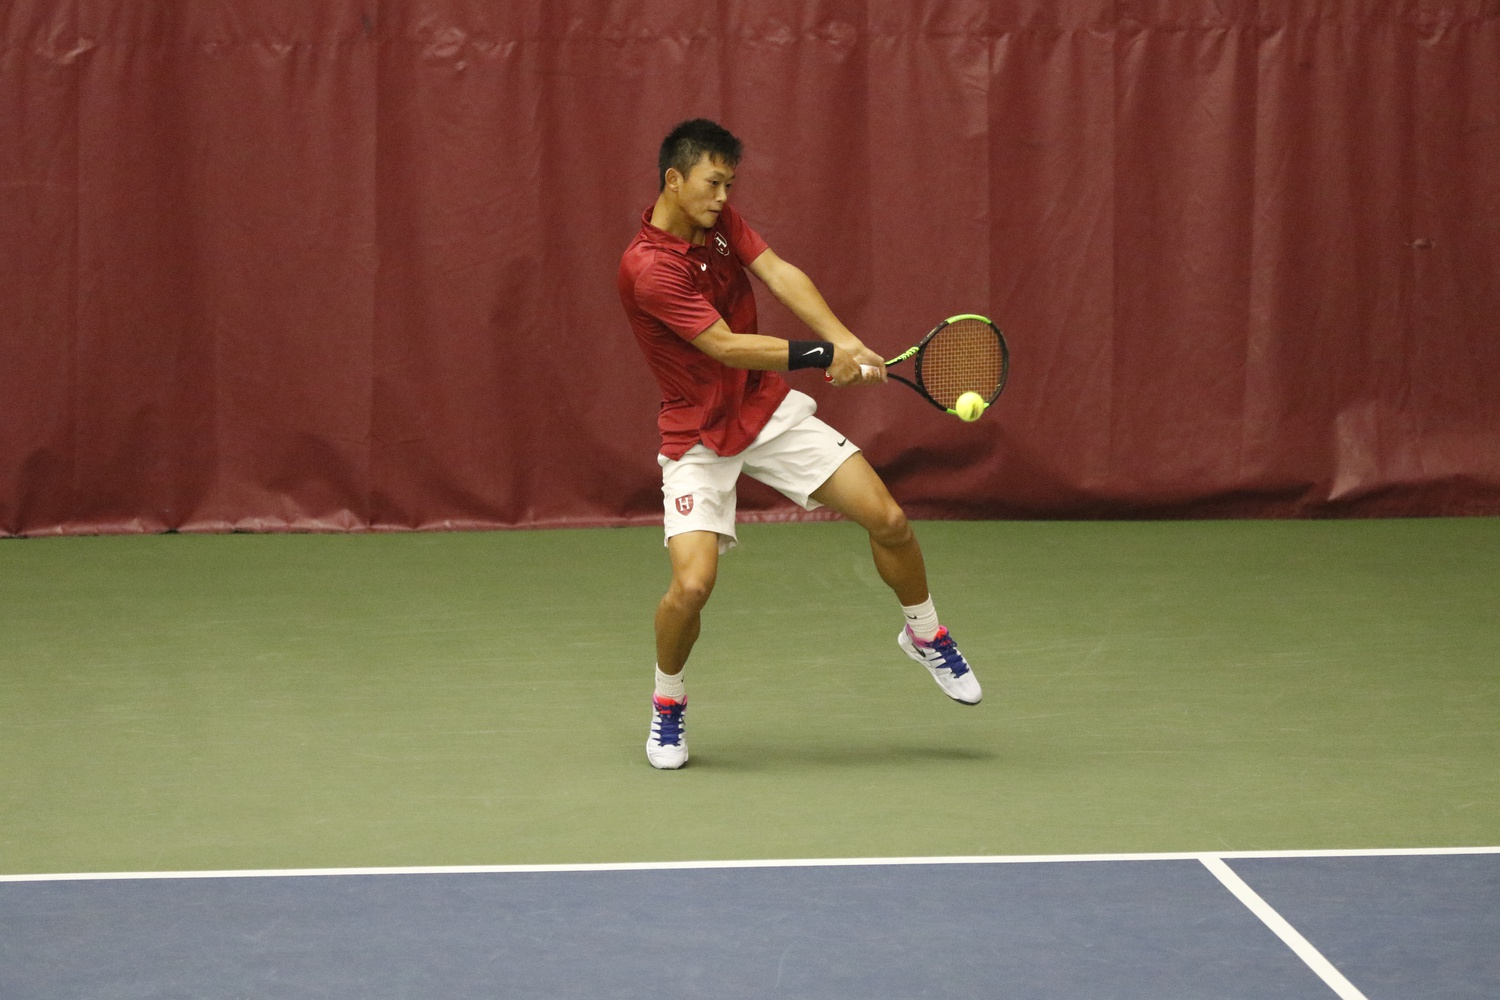 Despite the weekend loss to Columbia, Harvard men's tennis still has a chance at the Ancient Eight crown supposing Crimson win and Lions loss next week.